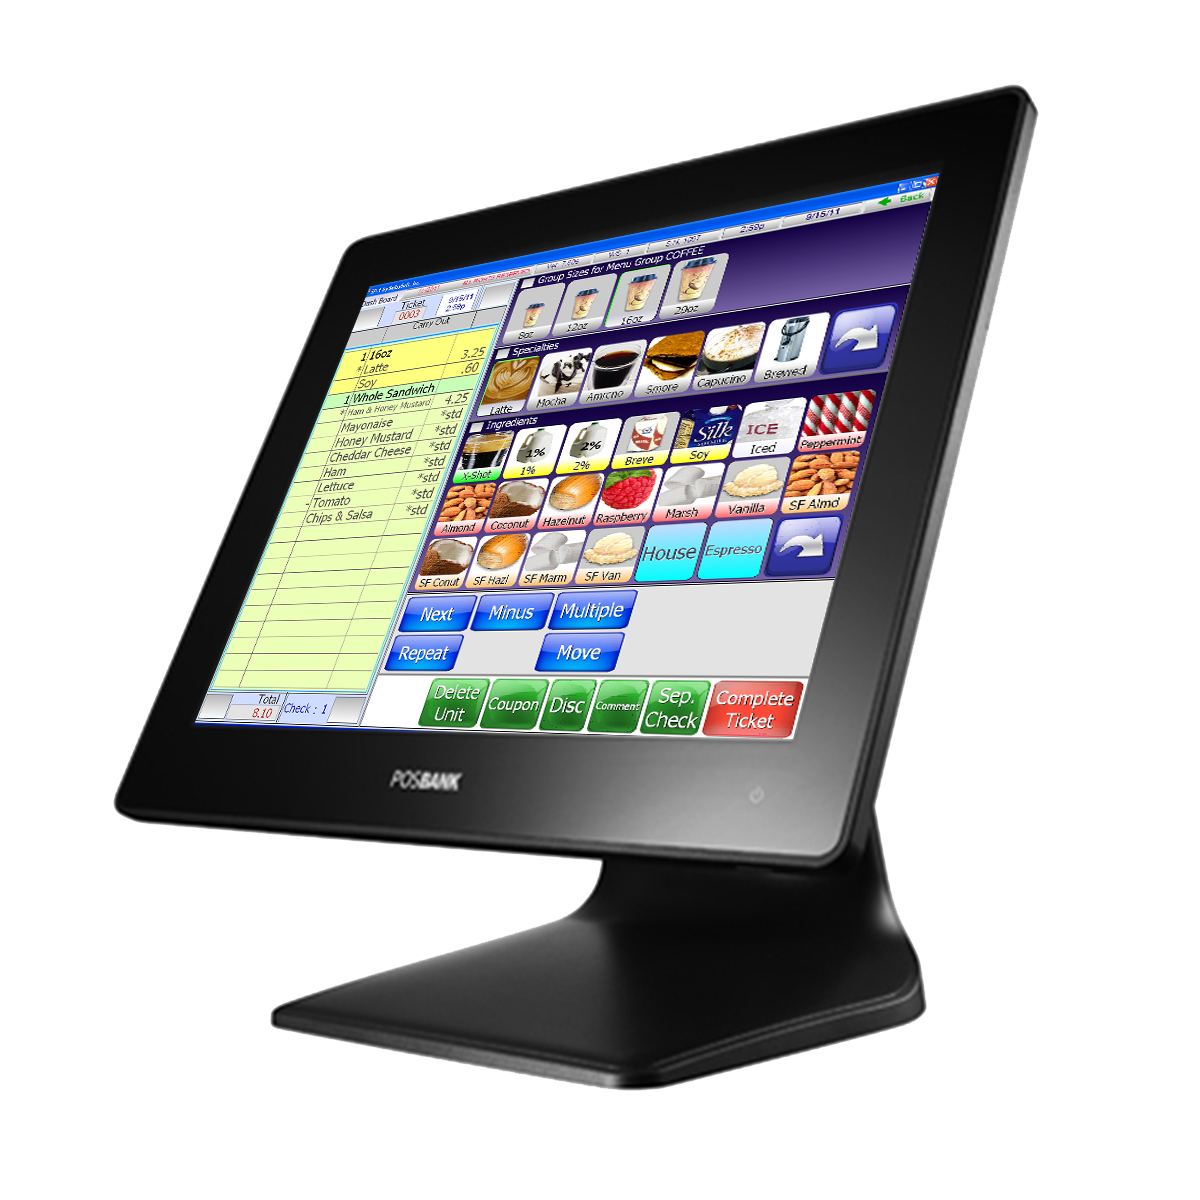 A POS with SelbySoft loaded on it